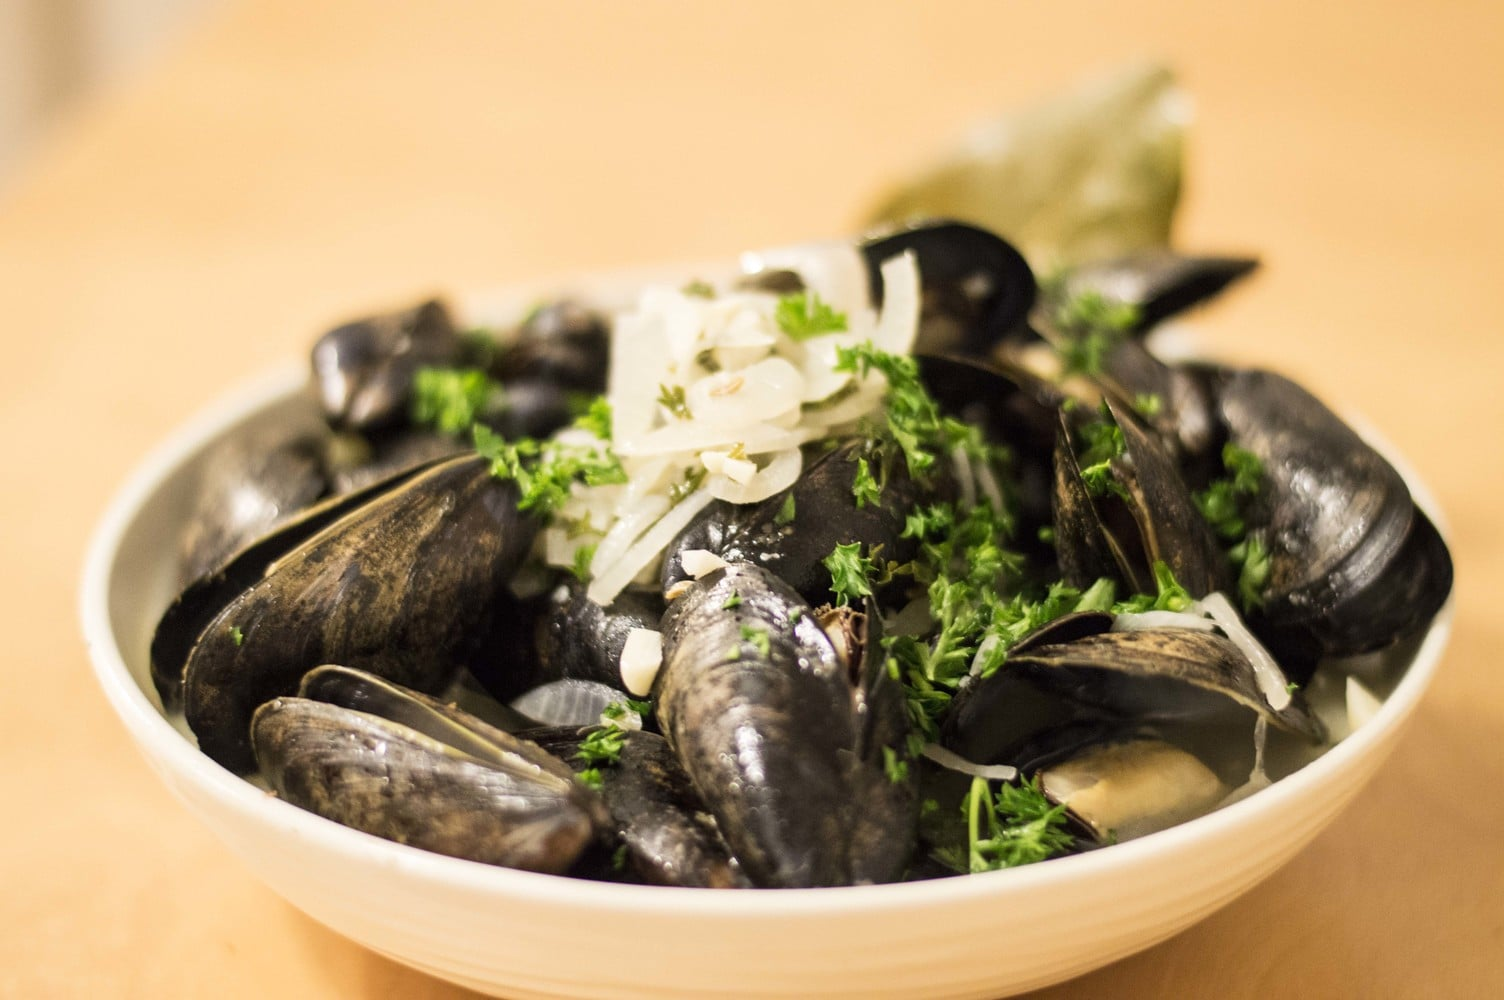 Drunken Mussels in White Wine Sauce - Cleaver Cooking